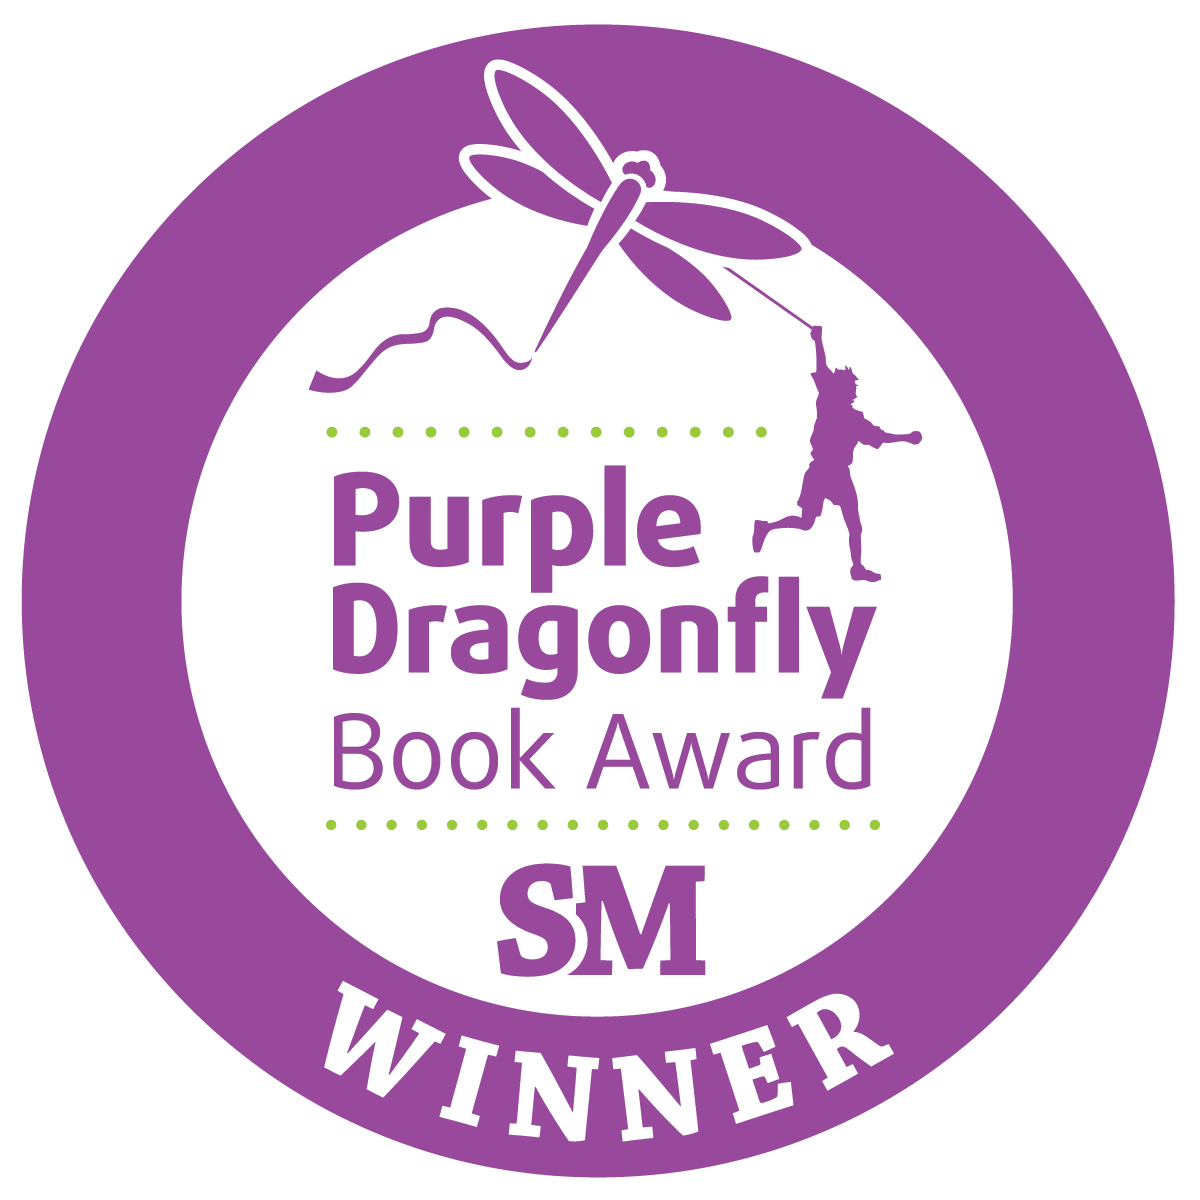 SM Dragonfly Purple Seal Winner 01